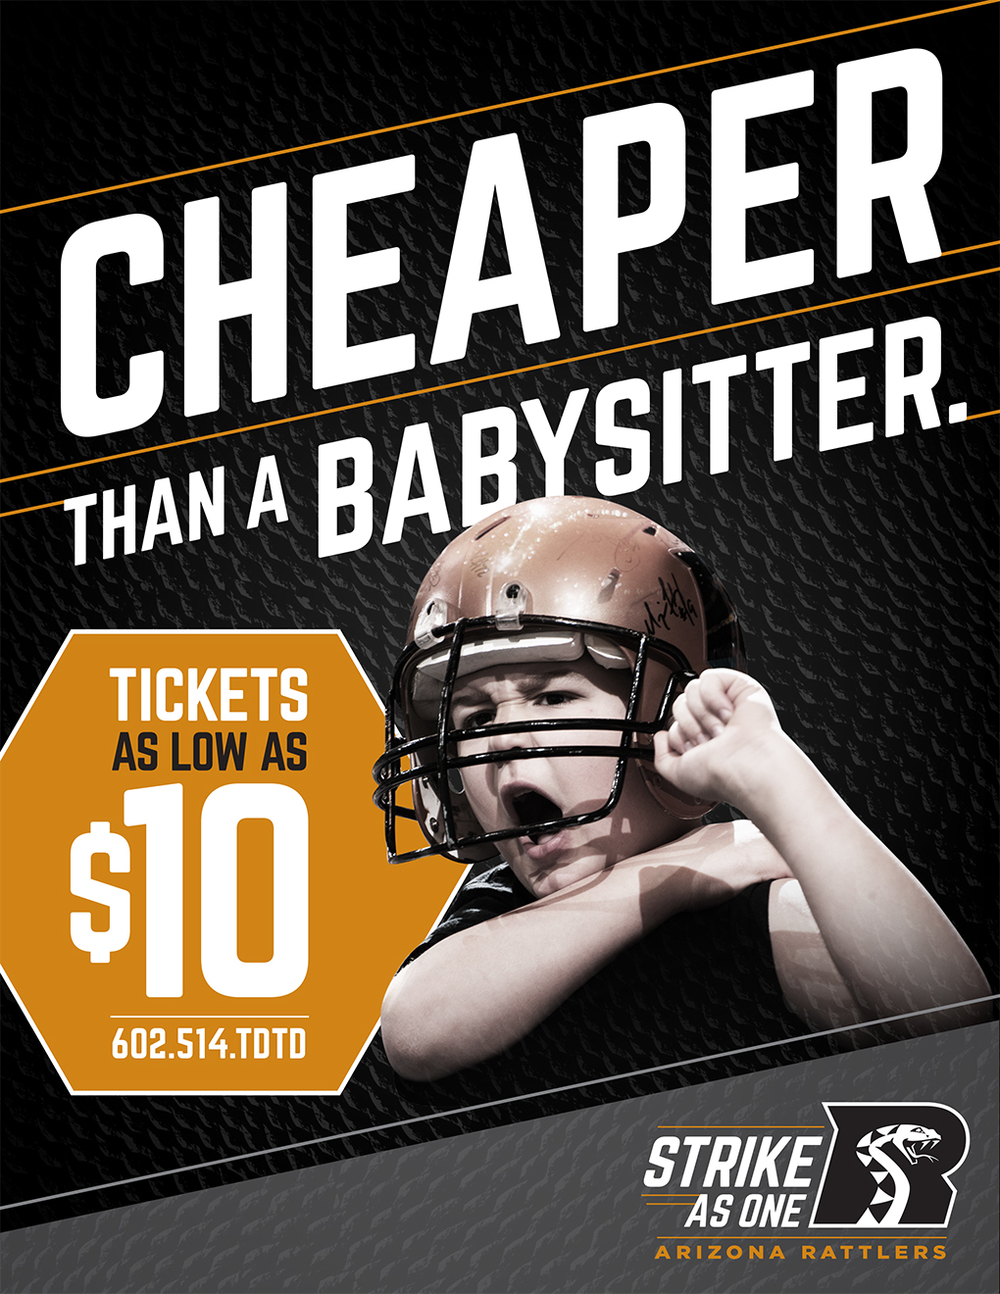 Arizona Rattlers 2015 Print Ads Art Direction: Katie Blaker, Hugh Mulligan Creative Direction: GG LeMere, Greg Fisher